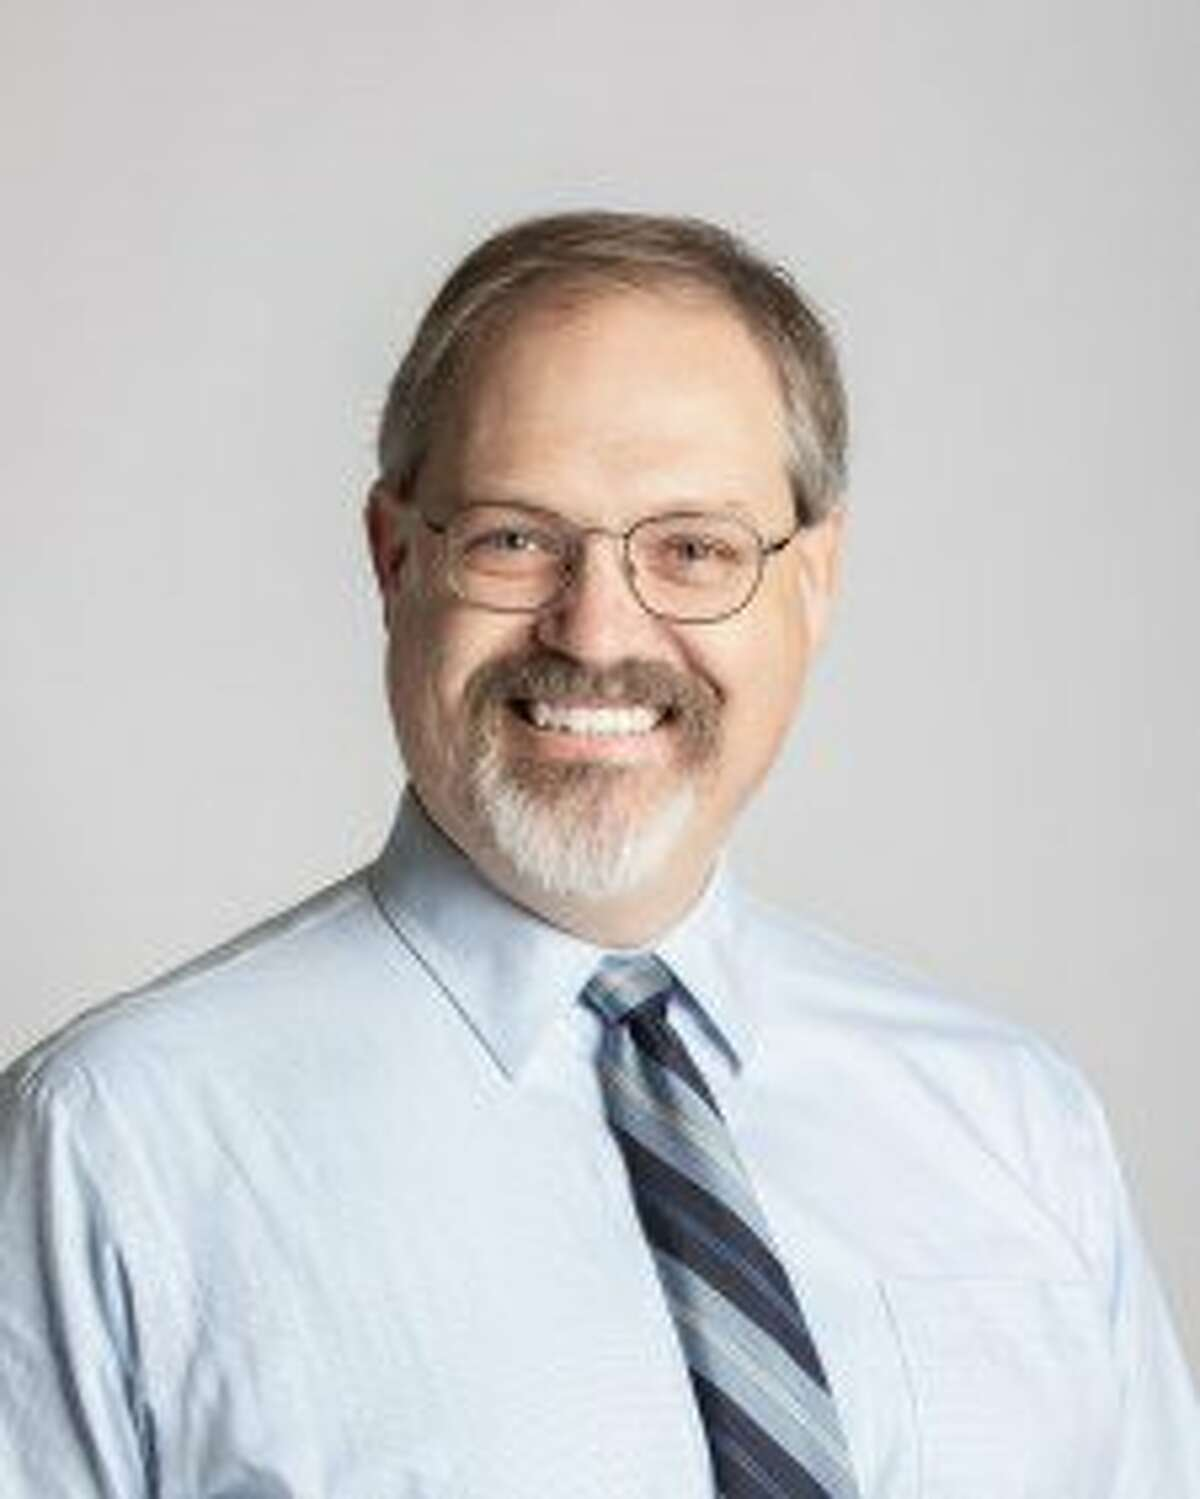 Math Professor Eric Kaljumagi is president of the Community College Association that is supposed to represent Calbright faculty. He is surprised that Calbright, the state's first online community college, has yet to hire faculty.